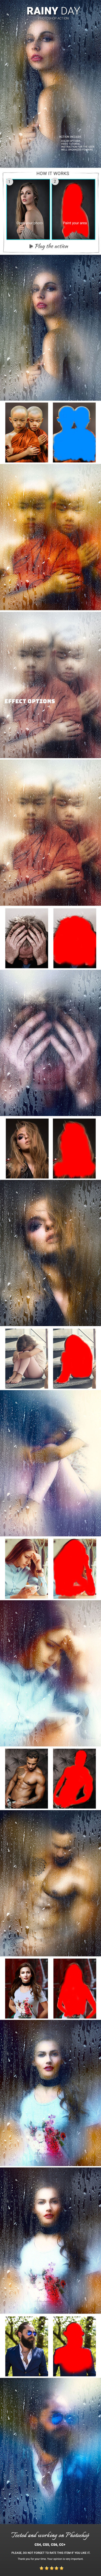 Rainy Day Photoshop Action - Photo Effects Actions